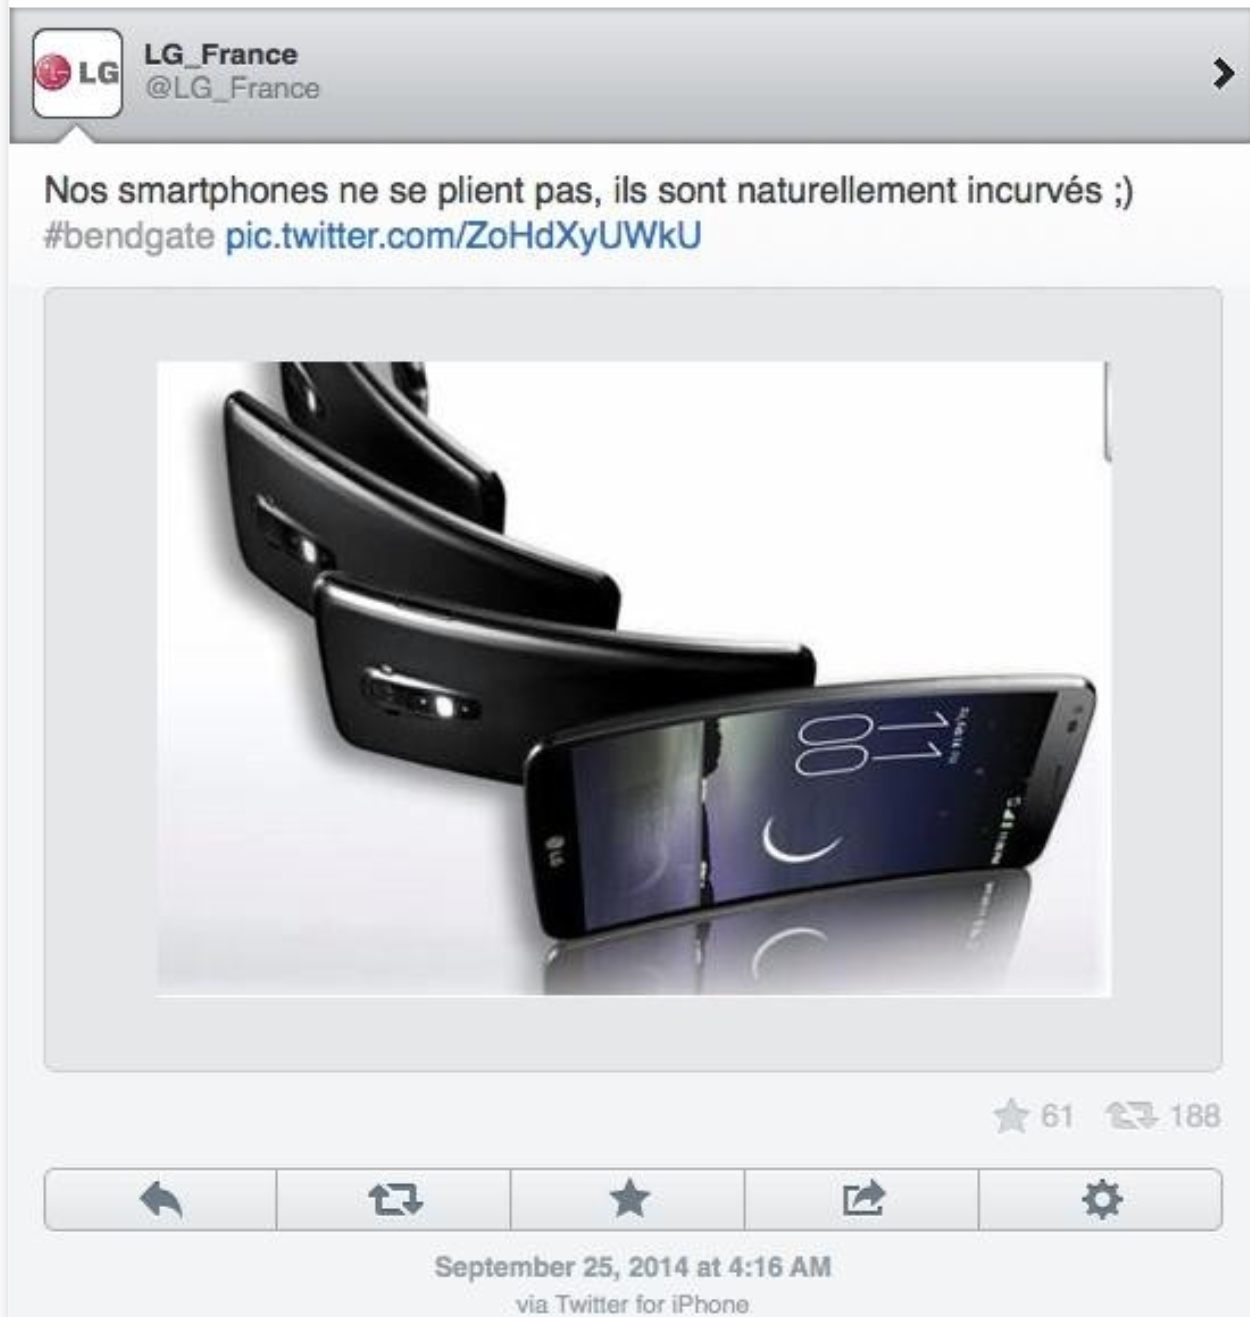 An LG ad tweeted by an iPhone